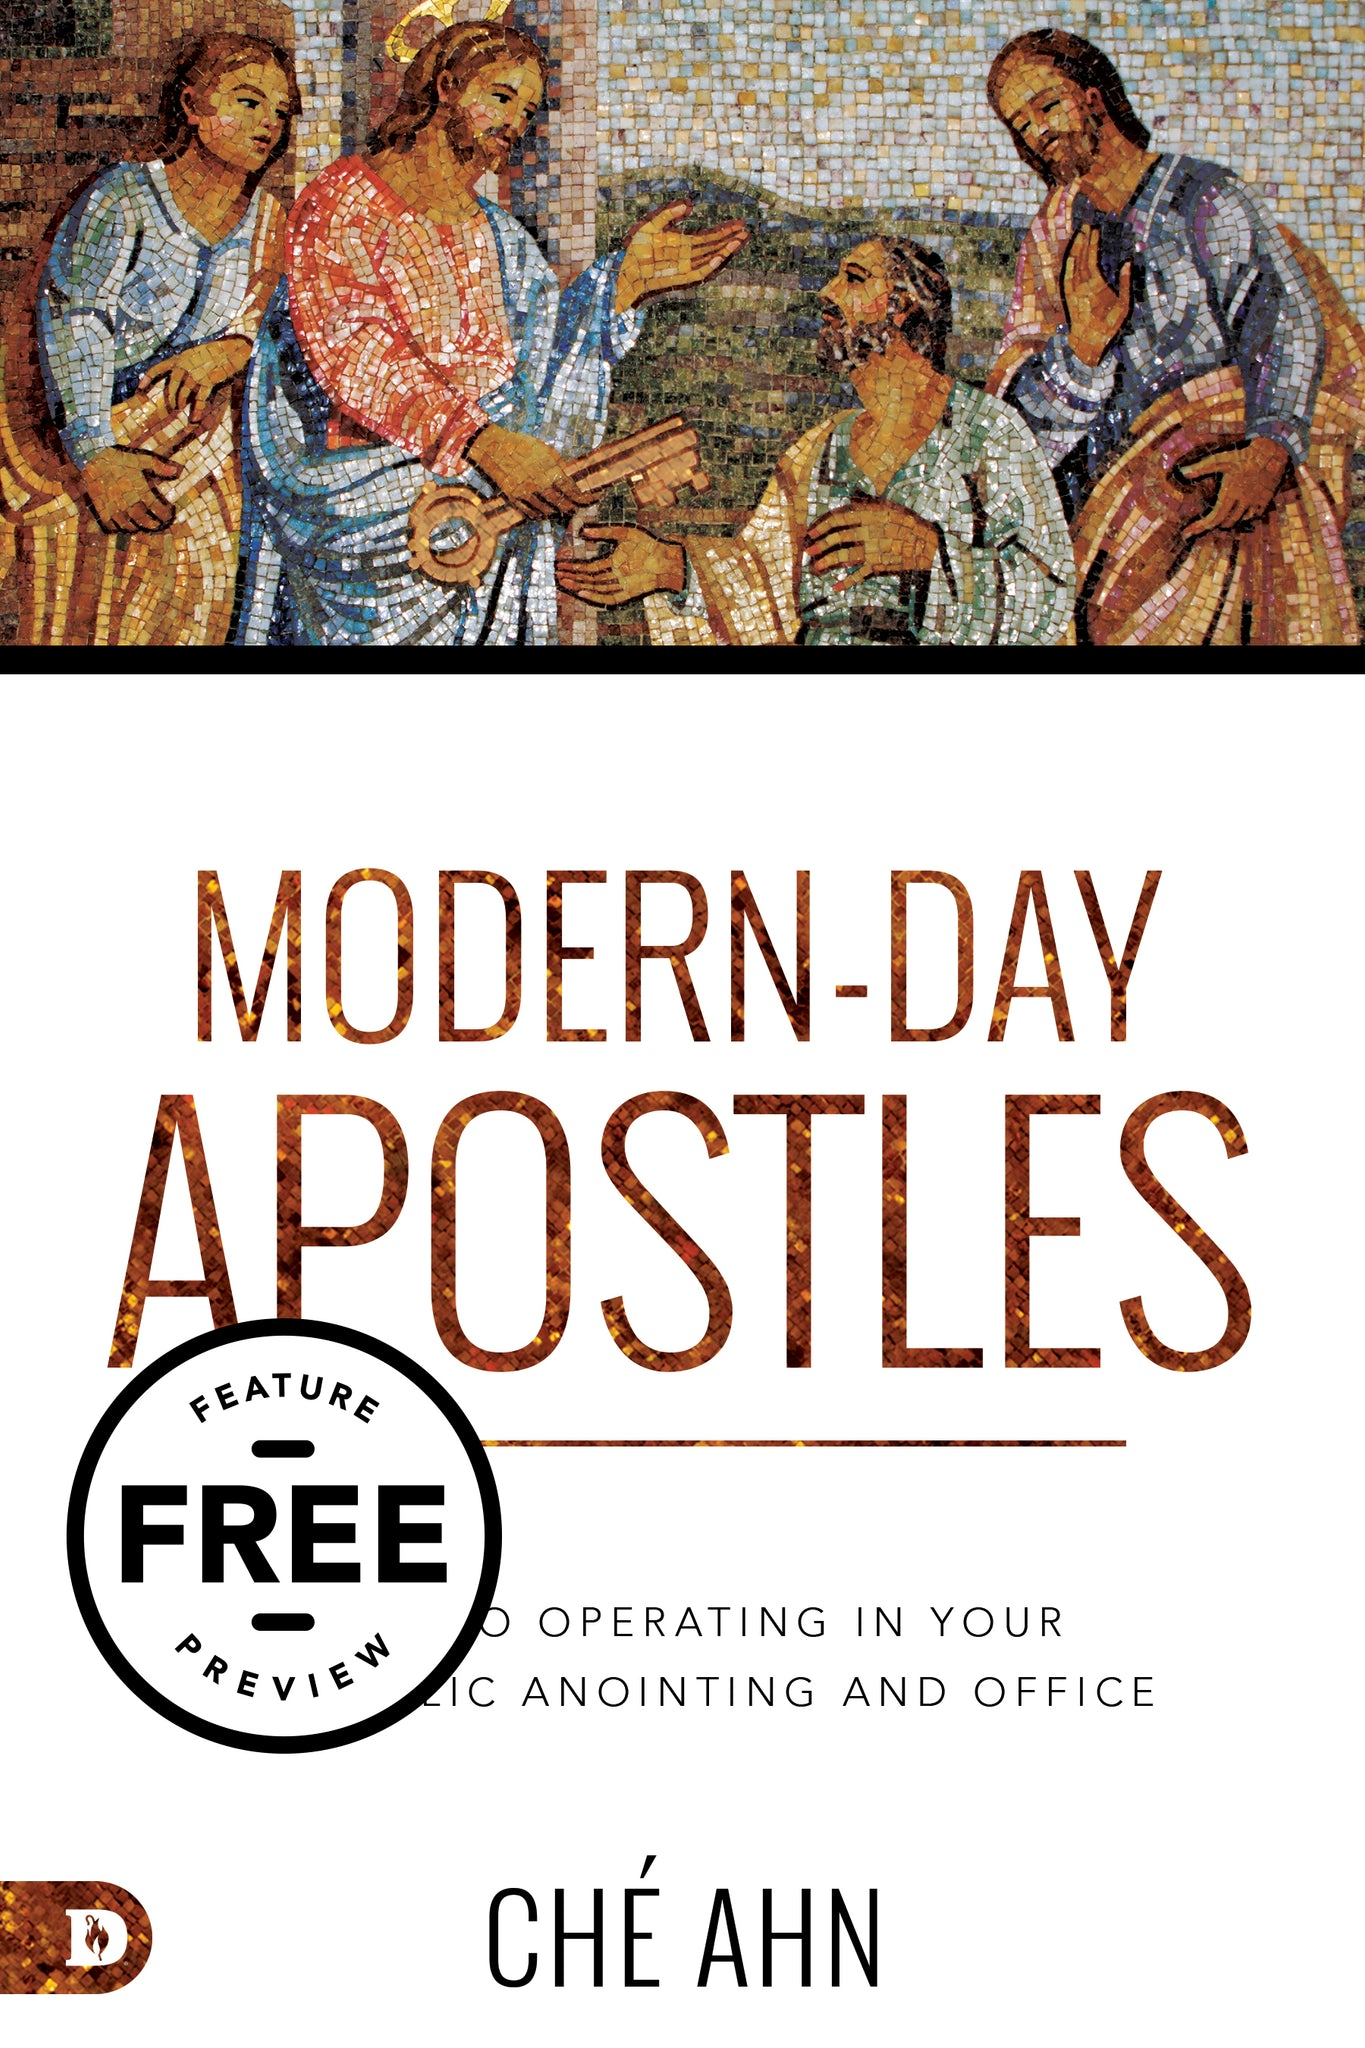 Modern-Day Apostles Free Feature Message (PDF Download)